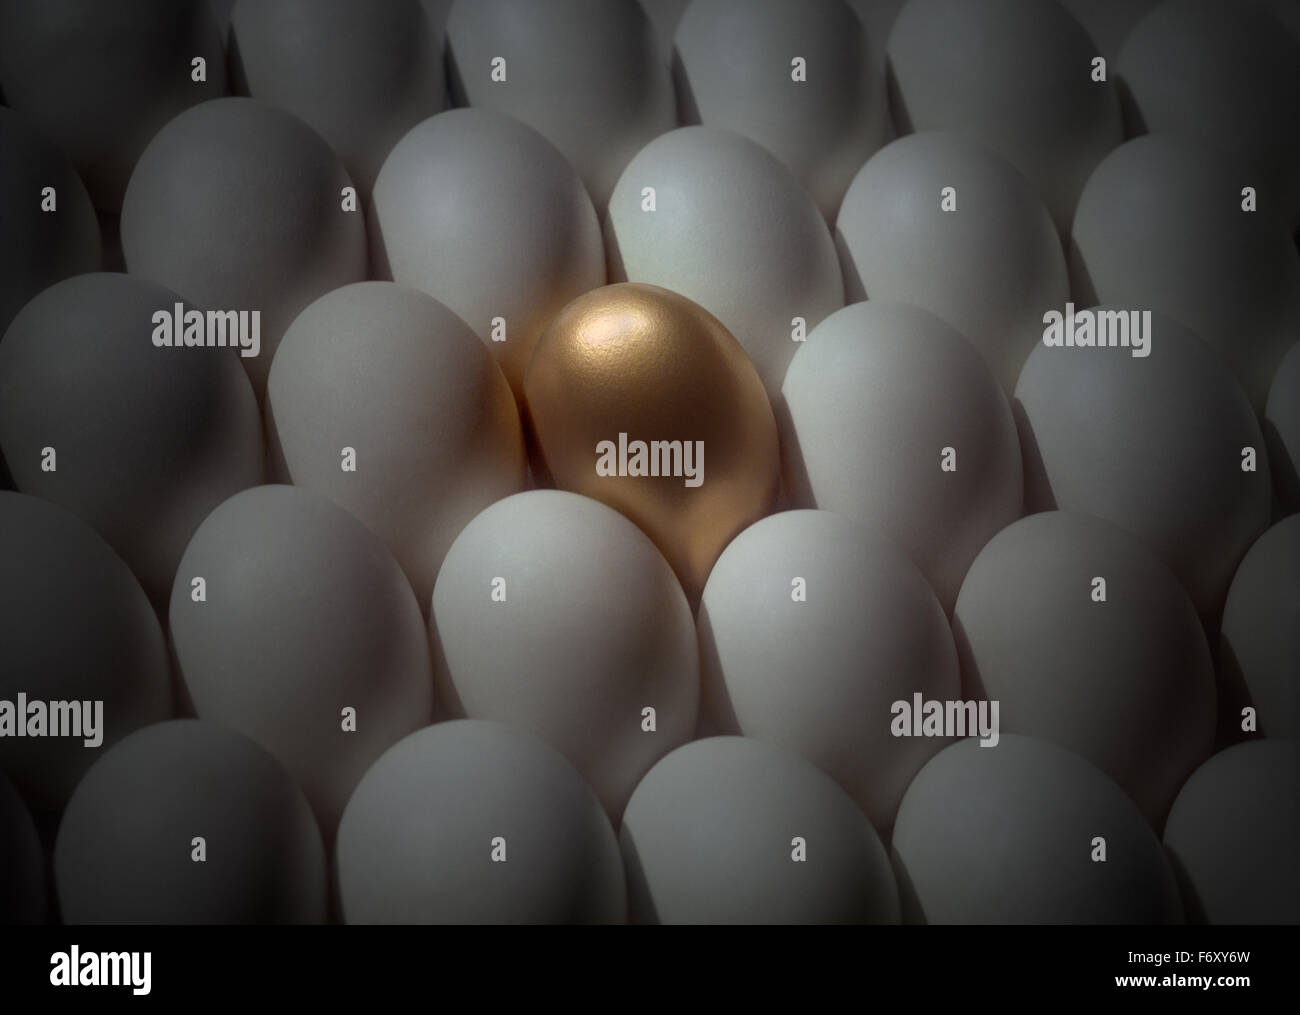 Gold egg among white eggs as the unique and individual odd one out - Stock Image